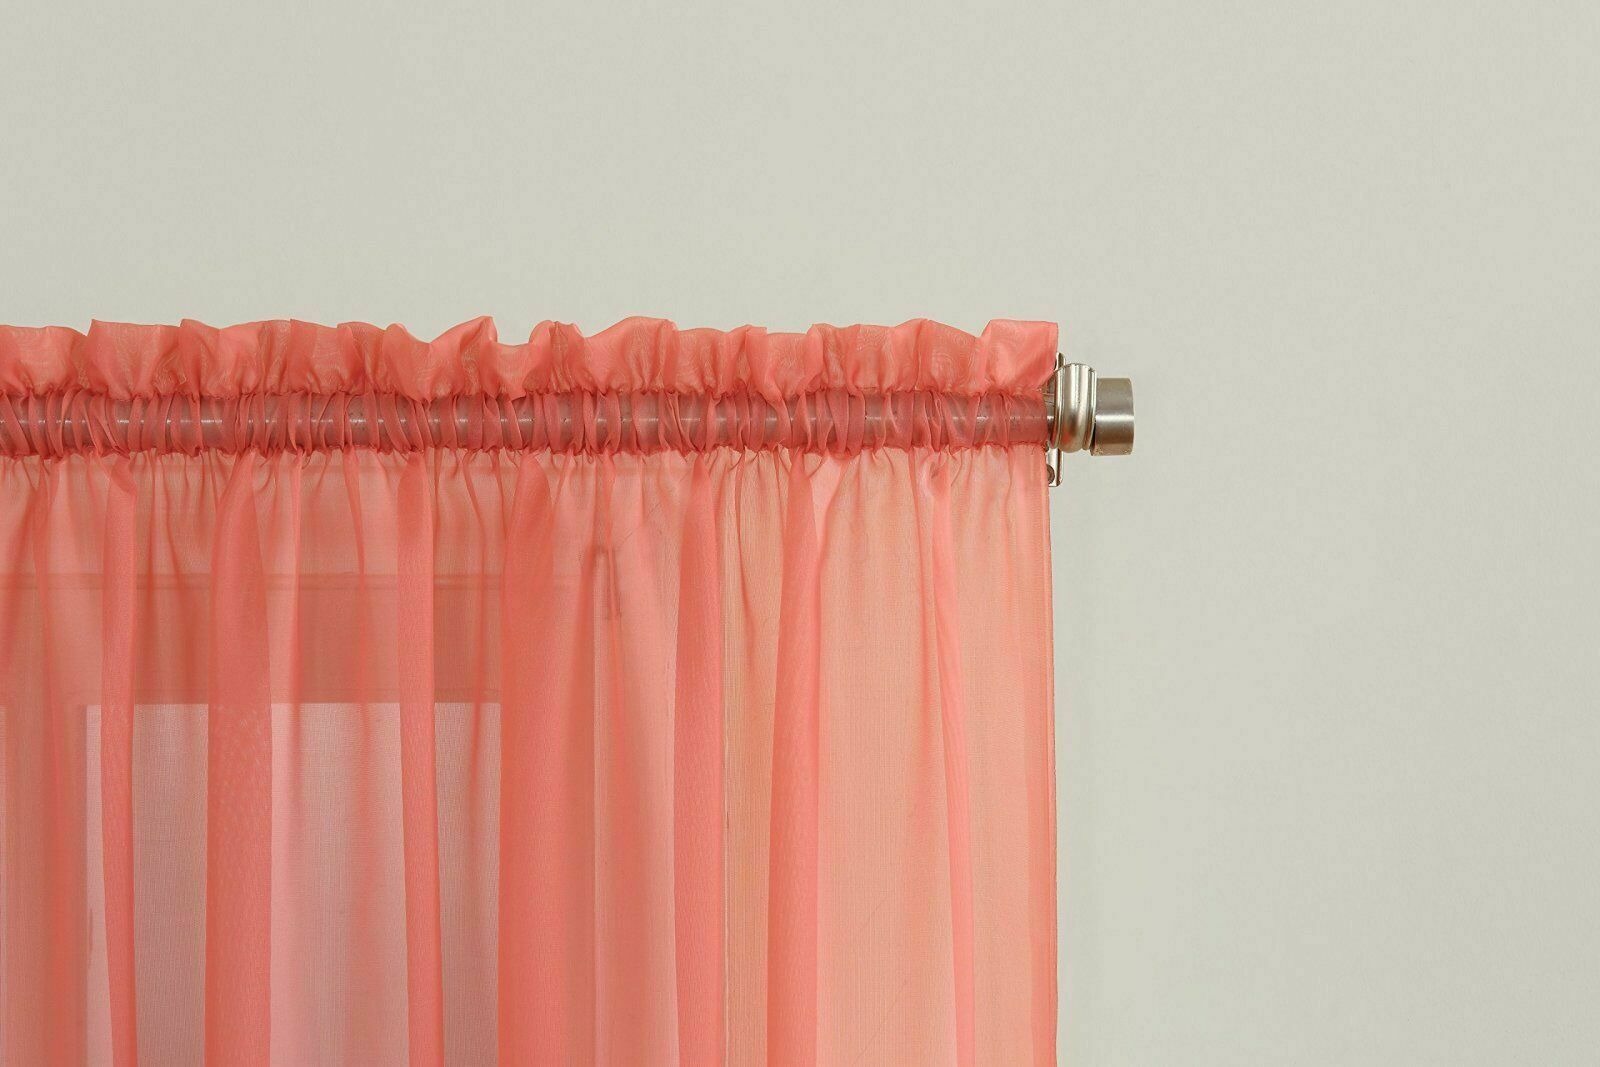 """Emily Sheer Voile Rod Pocket Curtain Panel, 59"""" X 84"""", Coral Orange Throughout Emily Sheer Voile Single Curtain Panels (View 14 of 20)"""